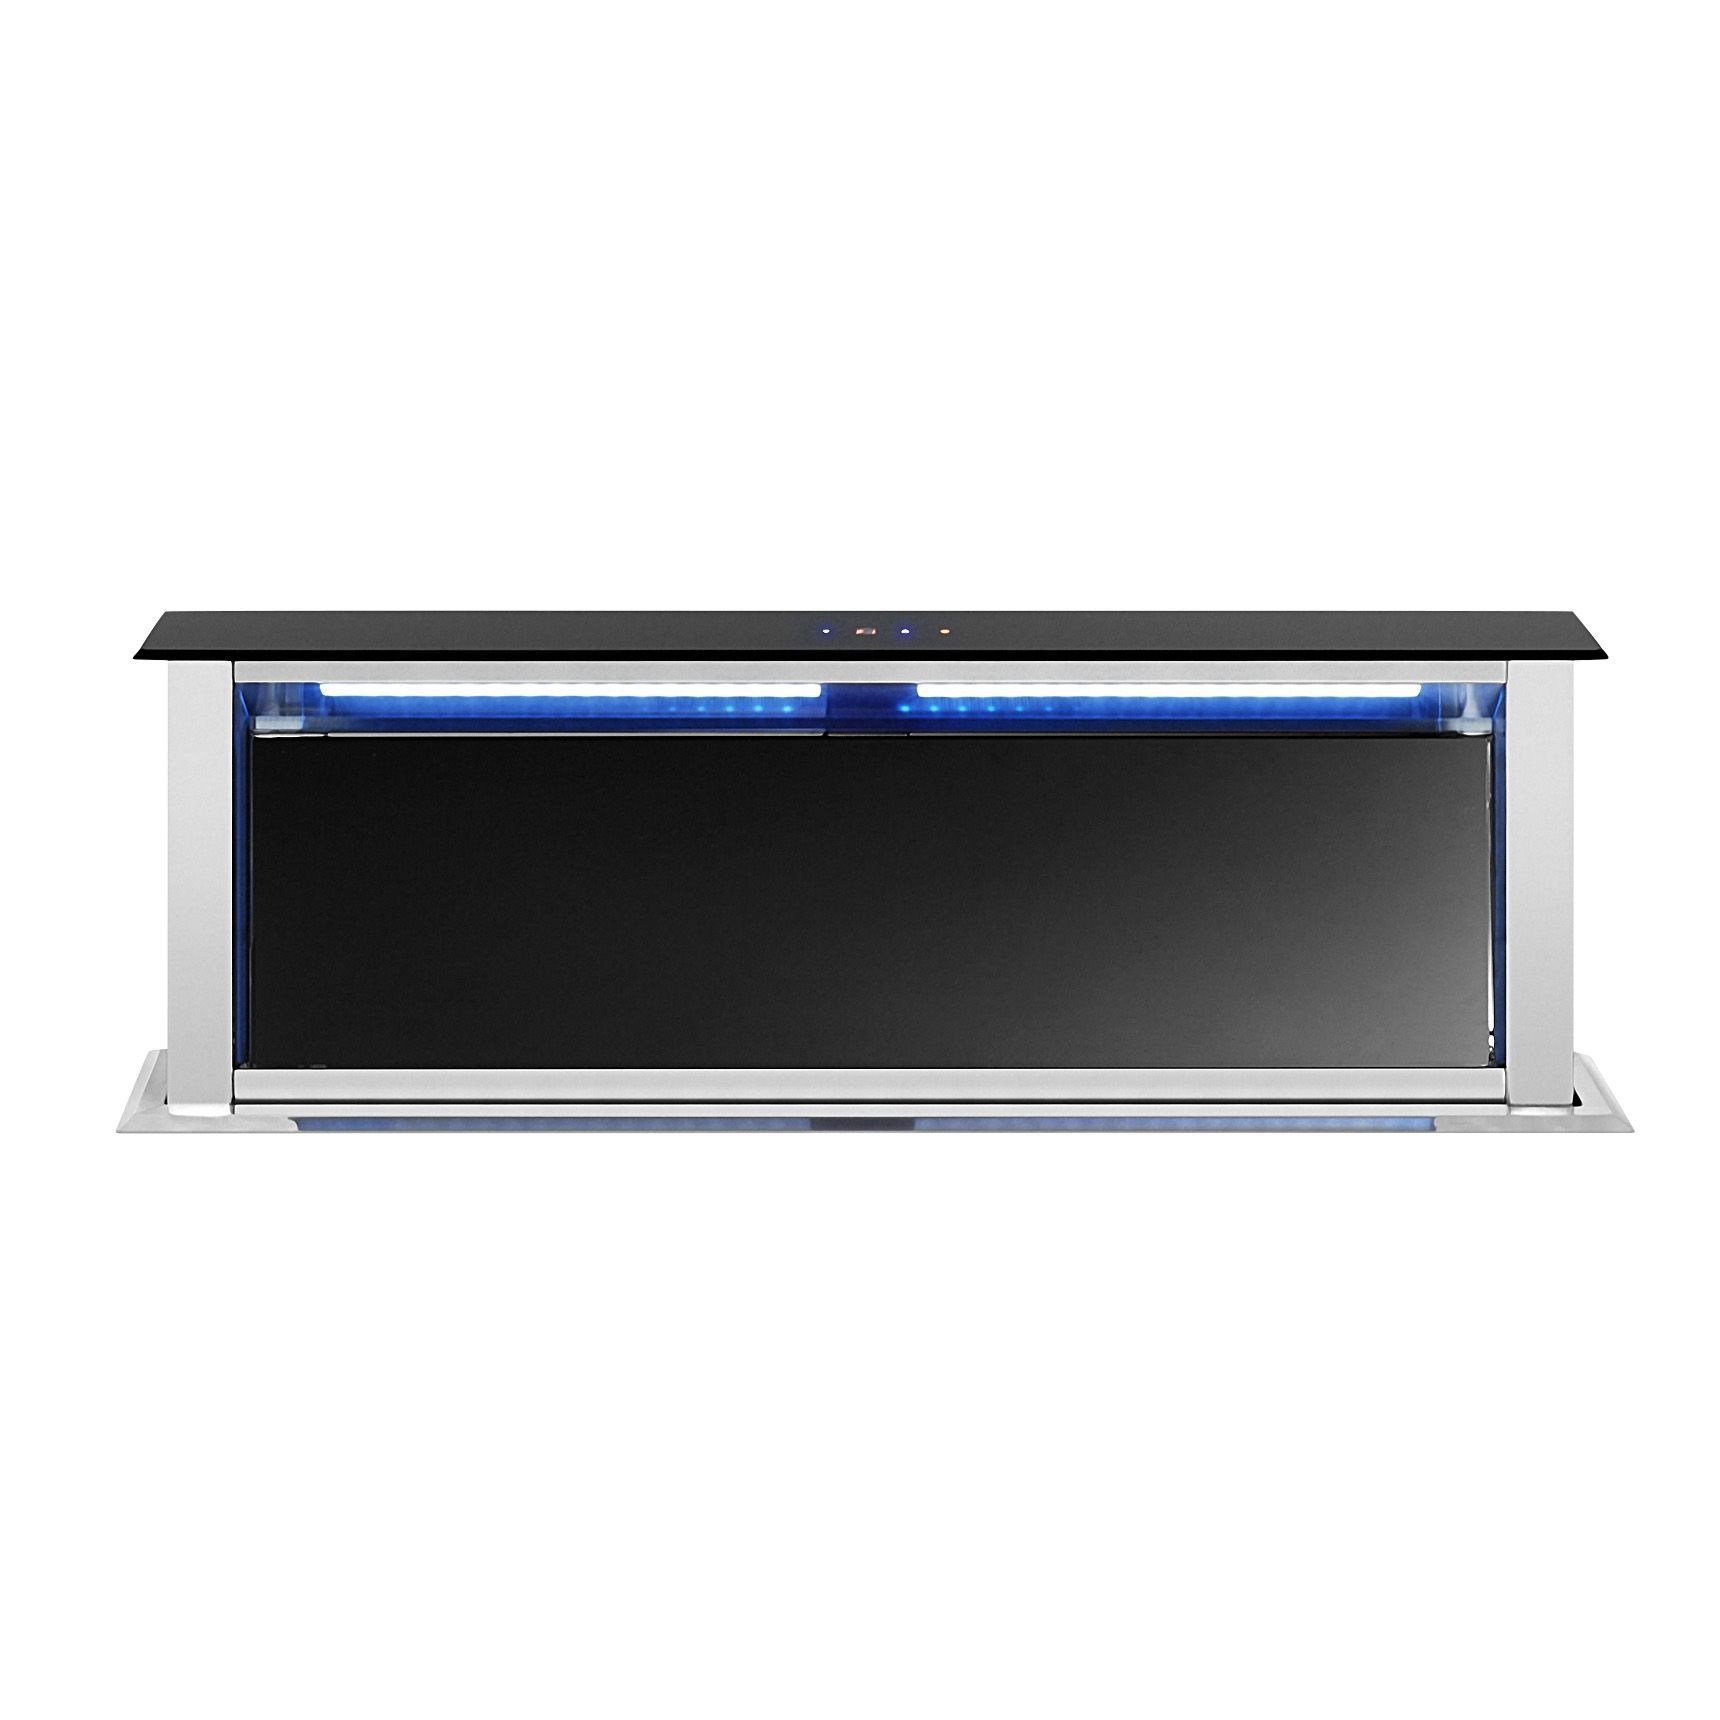 cooke lewis cldh 14 stainless steel downdraft cooker hood w 900mm departments diy at b q. Black Bedroom Furniture Sets. Home Design Ideas